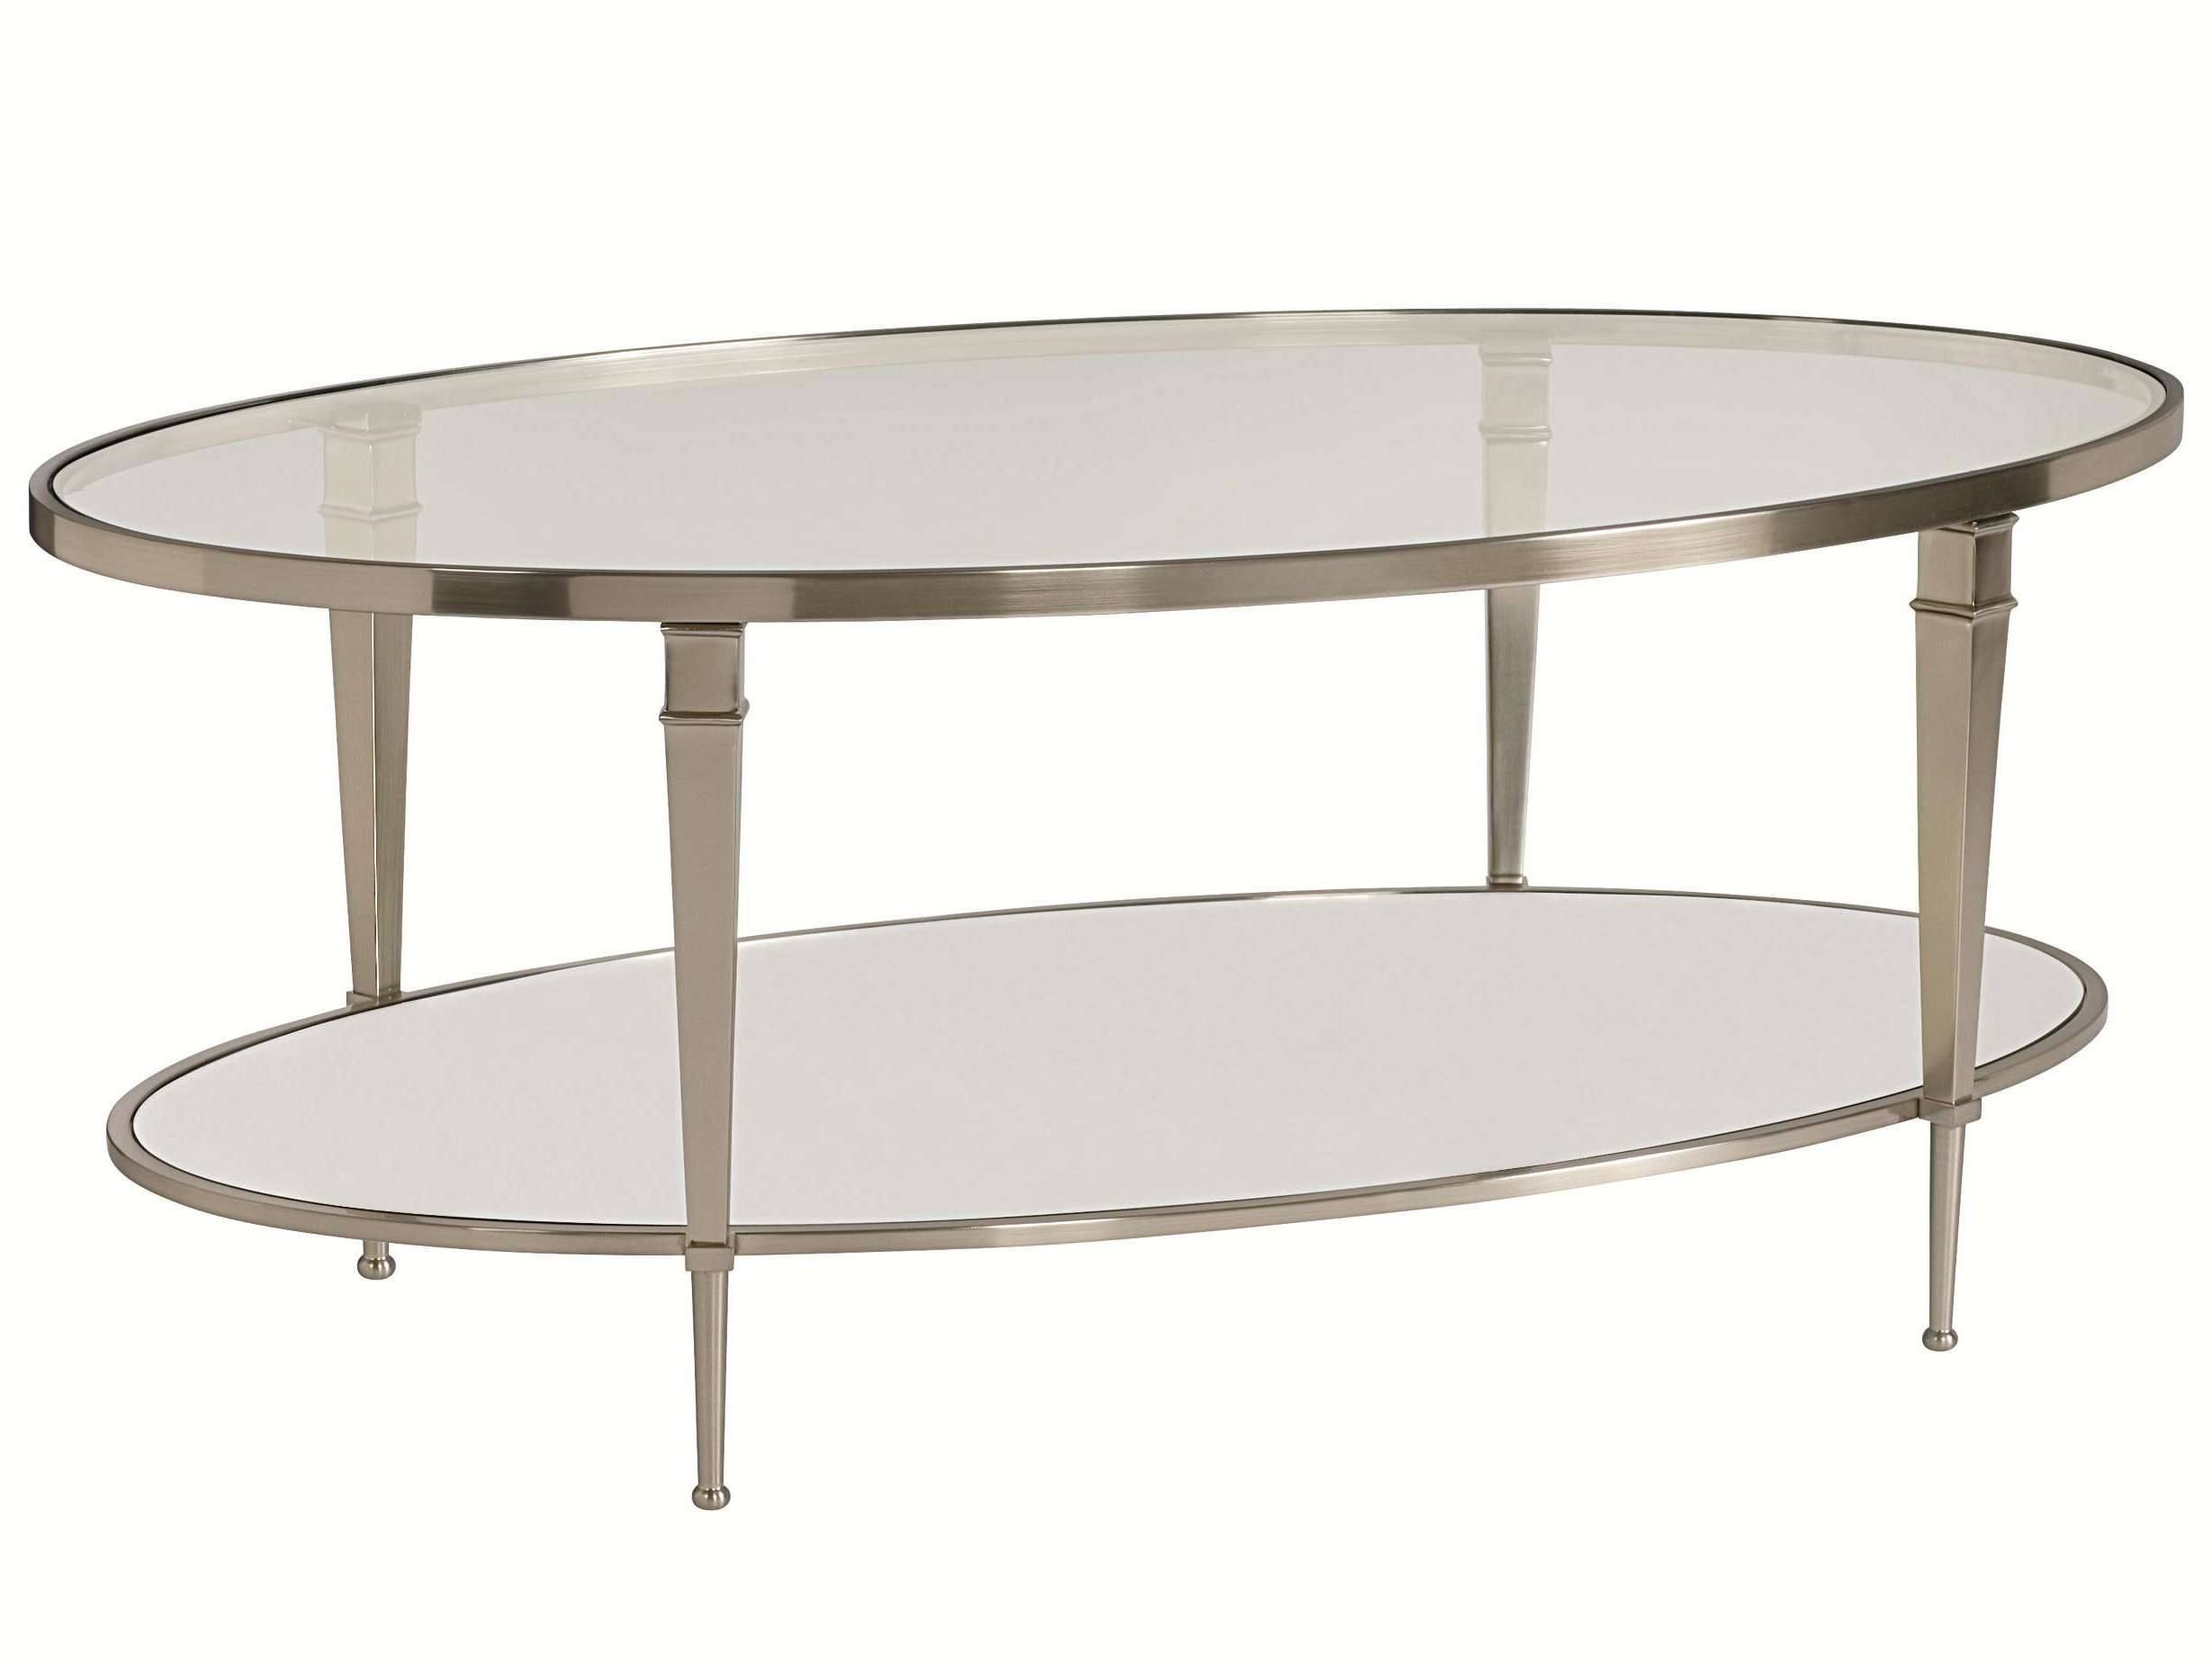 Oval Satin Nickel Antique Mirror Finish Cocktail Tablehammary Intended For Current Oval Mirrored Coffee Tables (Gallery 4 of 20)